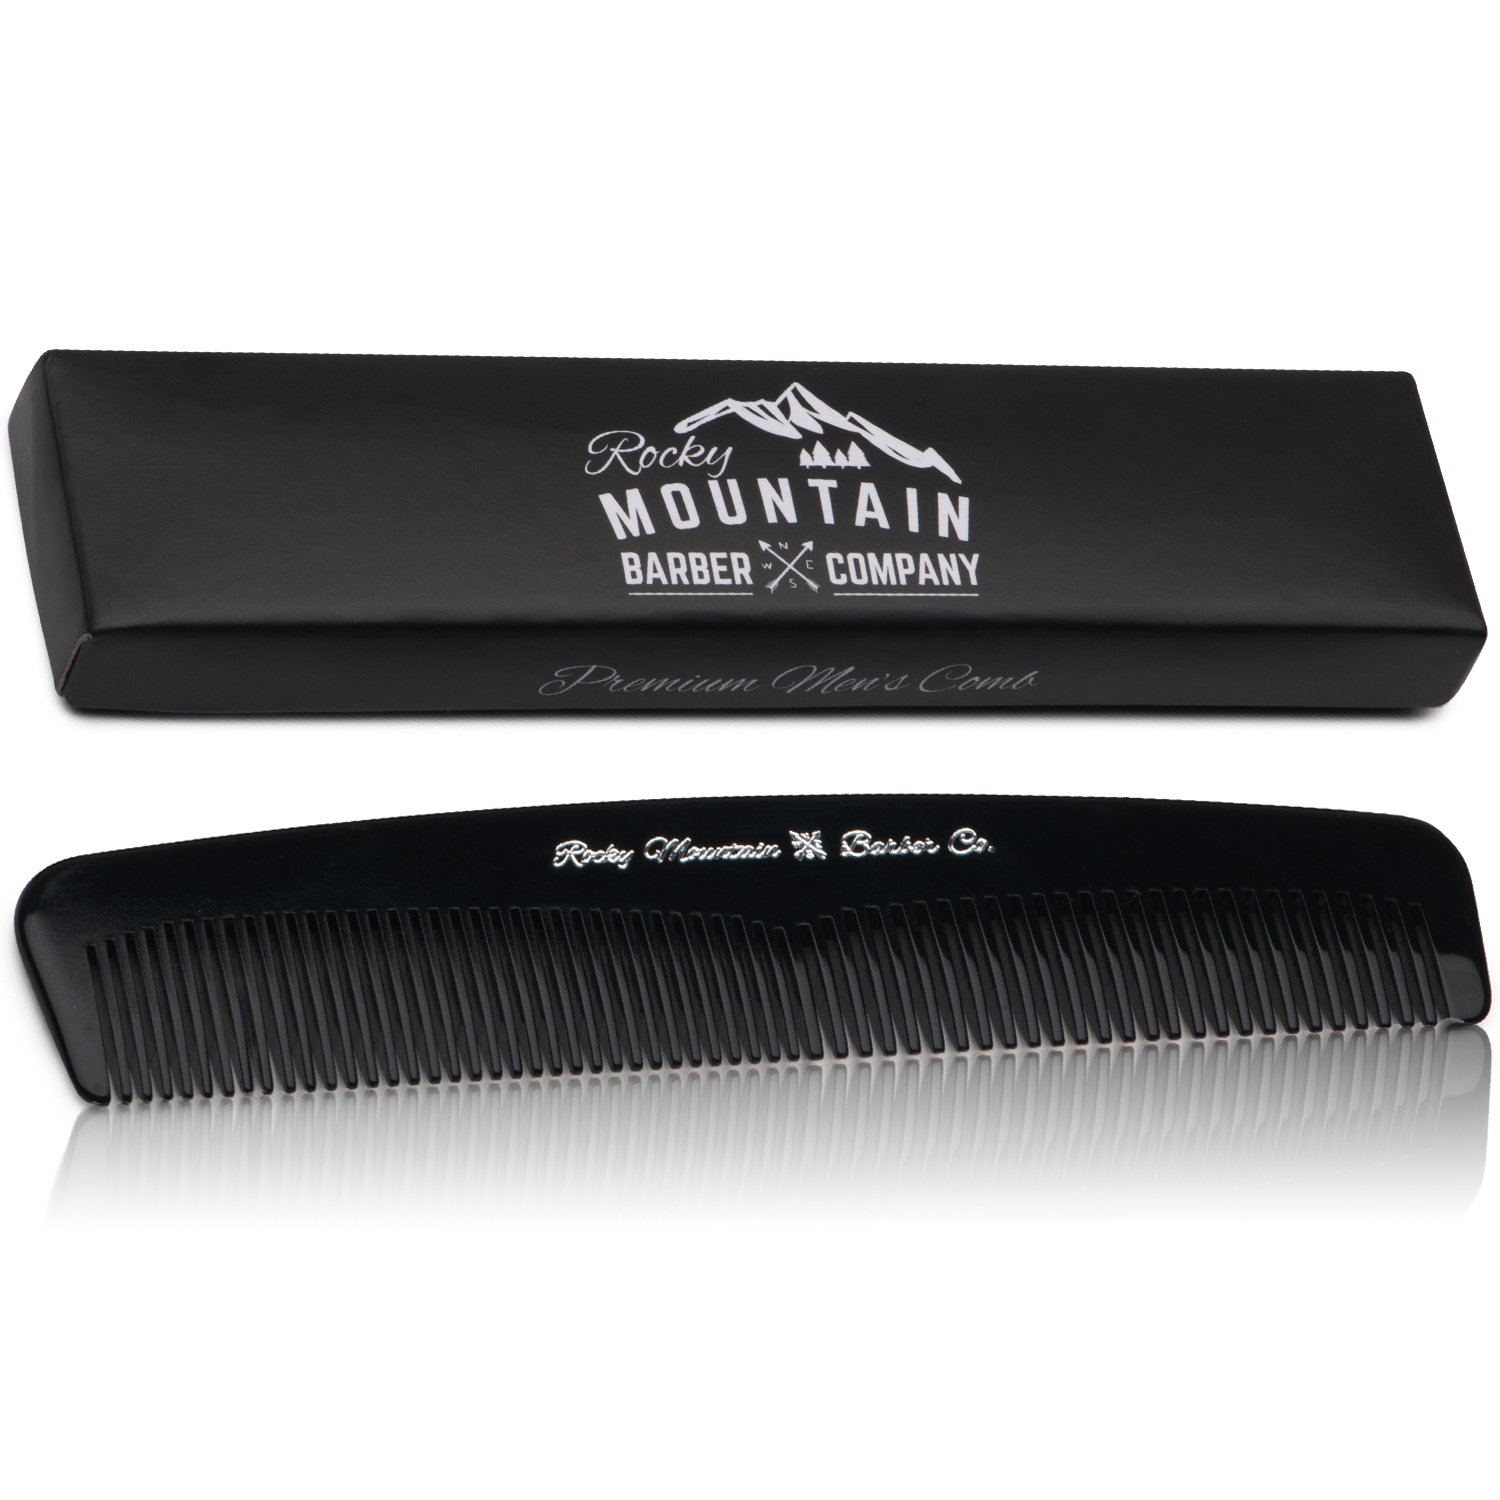 Men's Hair Comb – Plastic Modern Fine and Medium Tooth Comb Handmade for Head Hair, Beard, & Mustache - No Snag, Barber Grade Performance in Gift Box by Rocky Mountain Barber Company